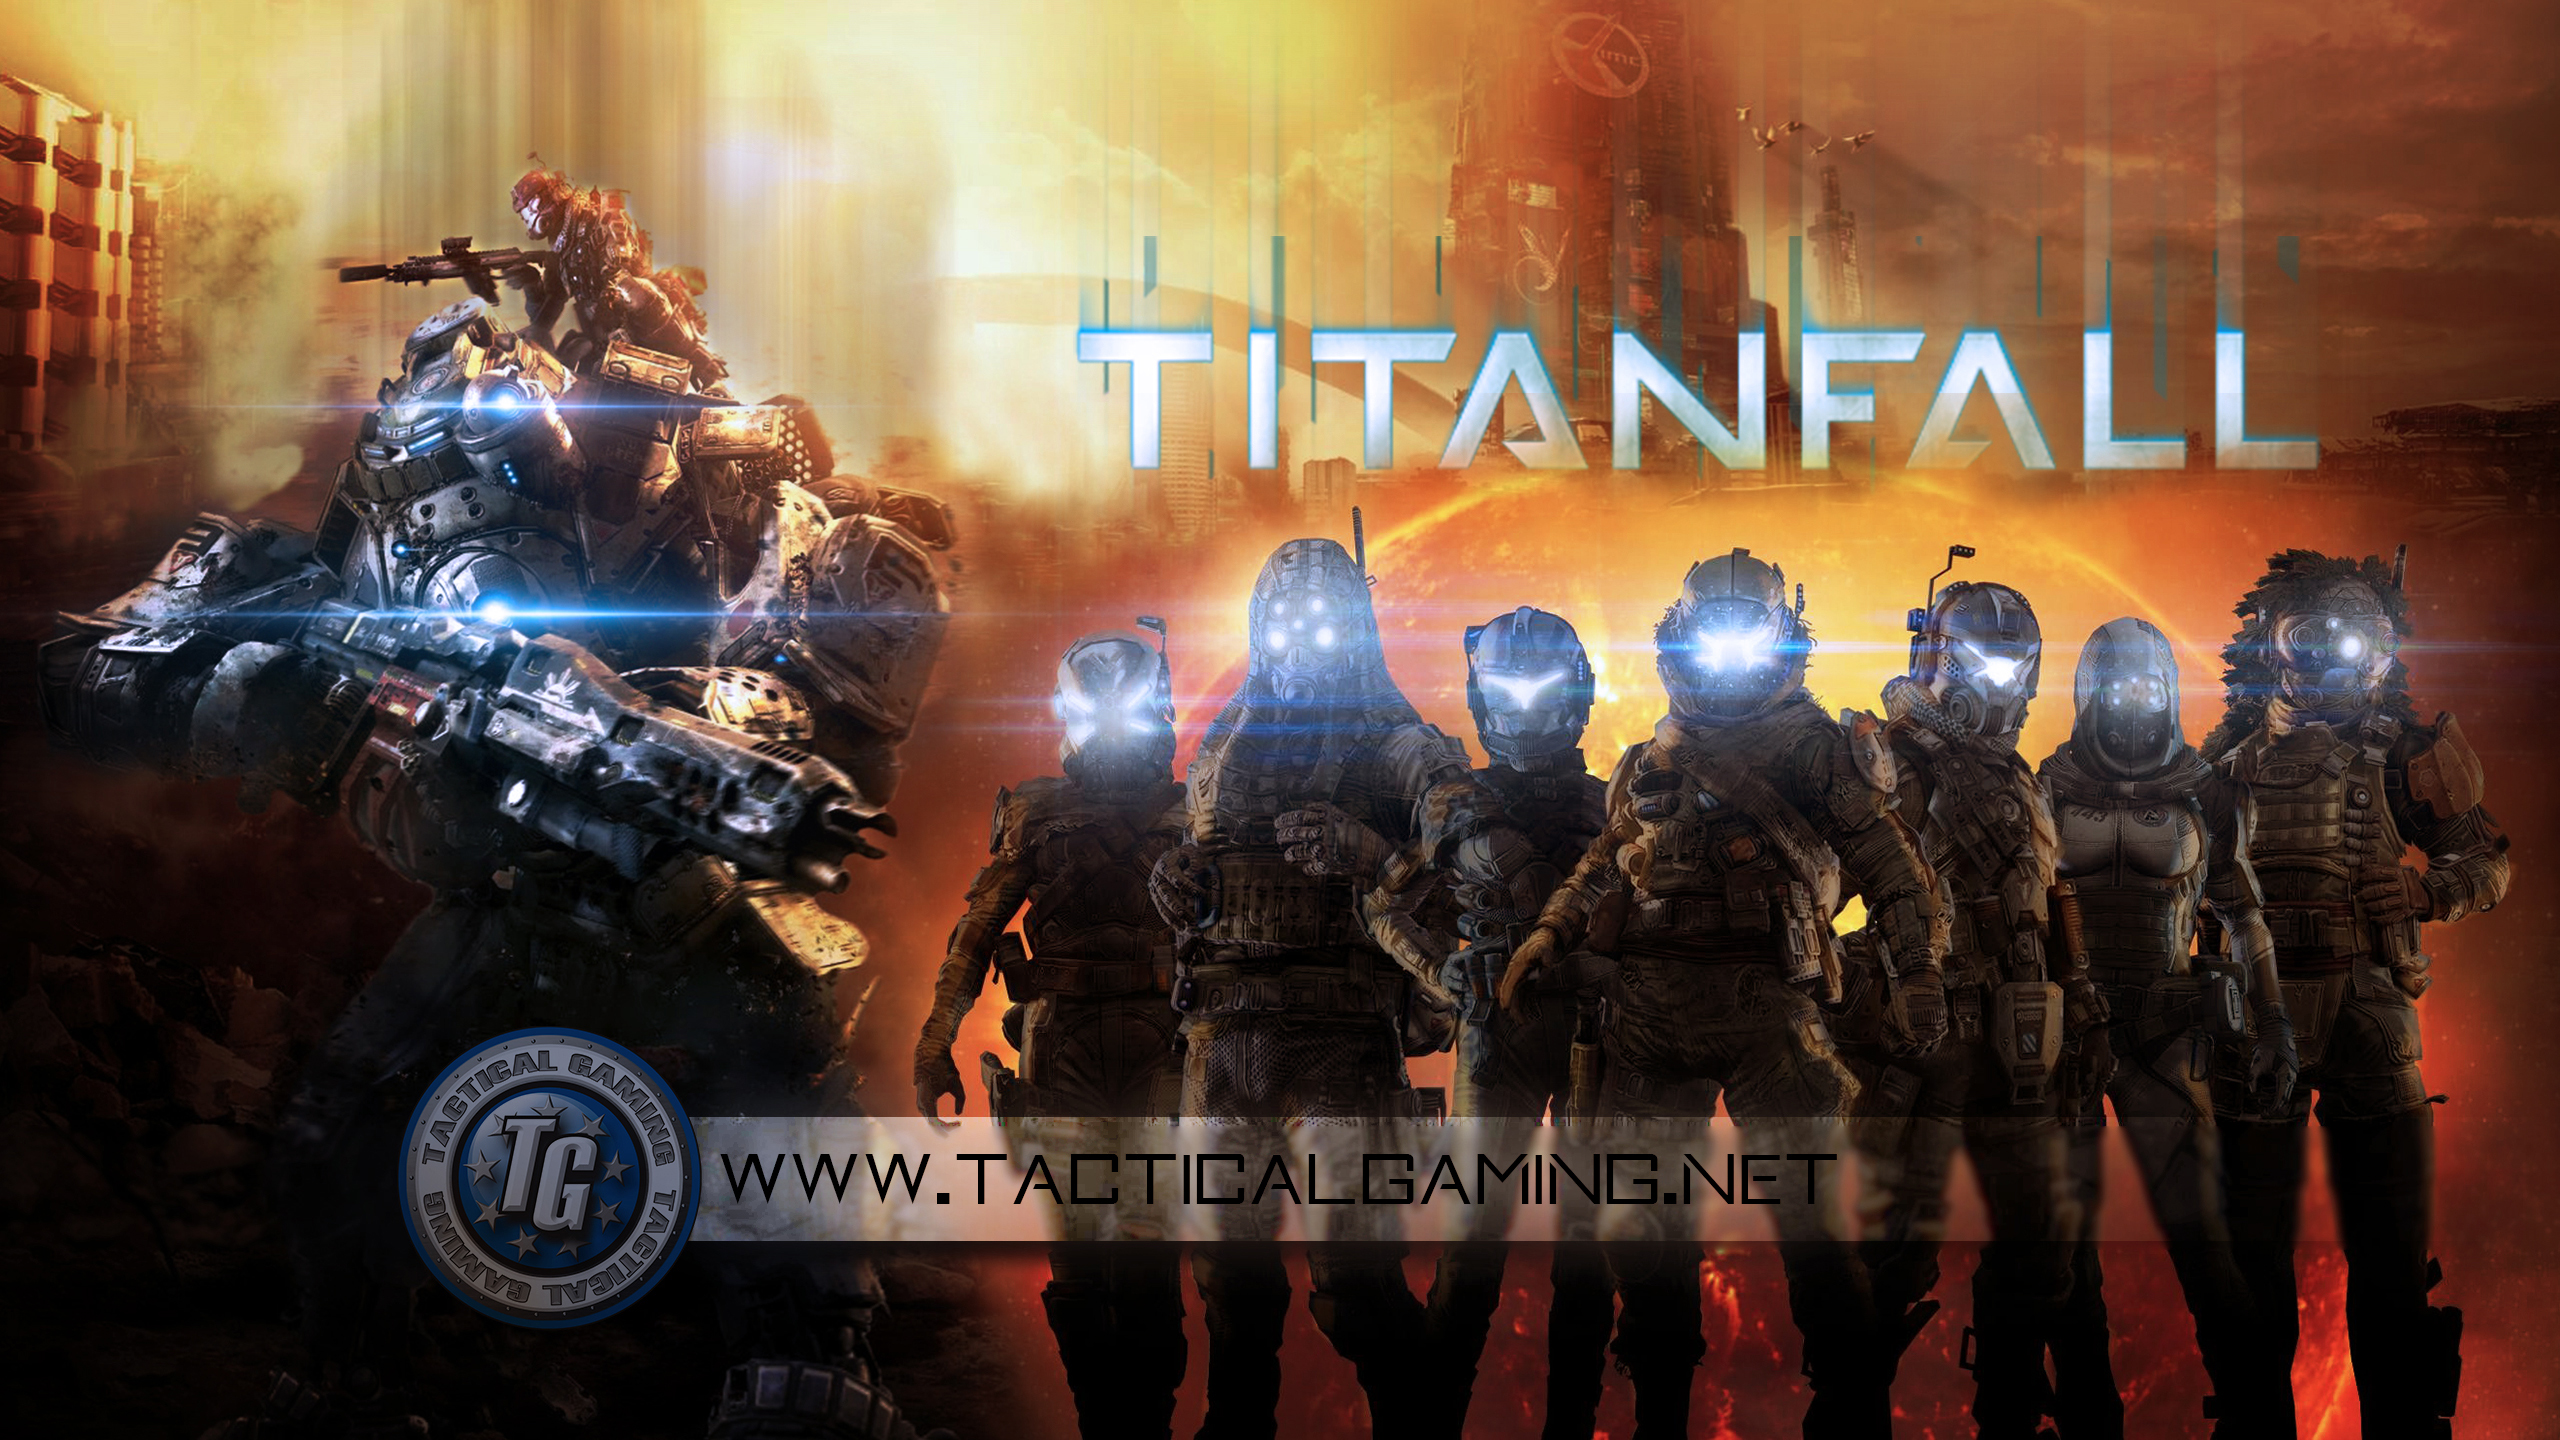 titanfall wallpaper #4 - pc wallpapers - gallery - tactical gaming